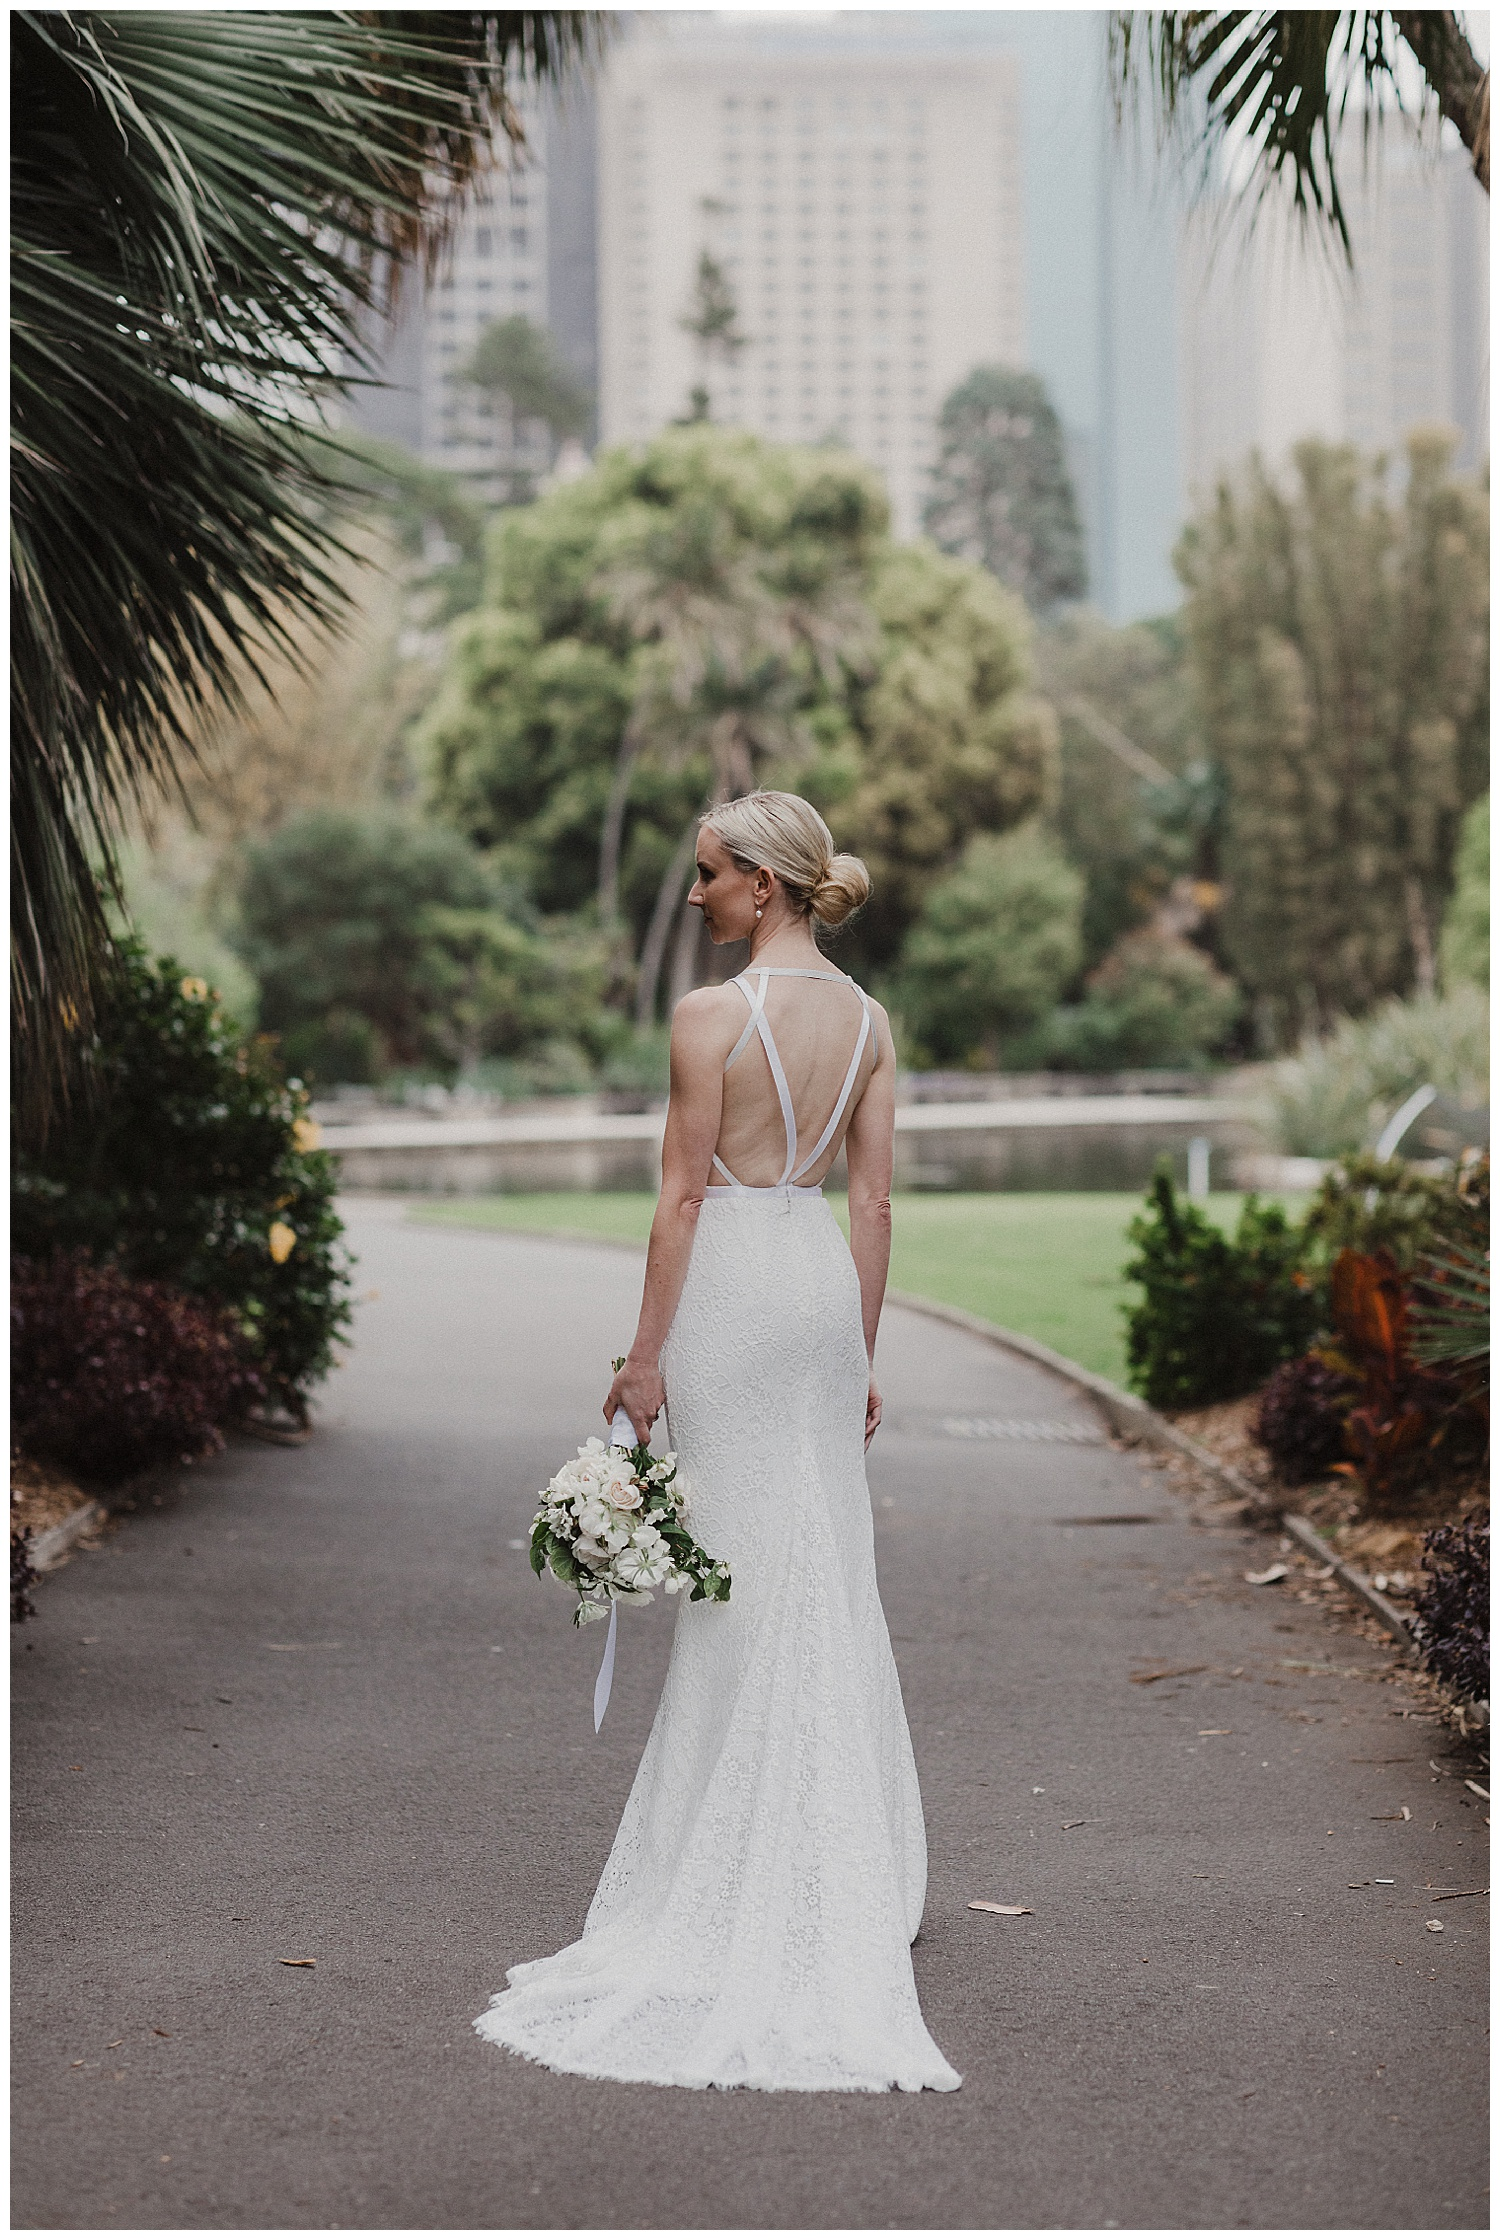 Sydney Bride in Karen Willis Holmes Dress at the Royal Botanic Gardens